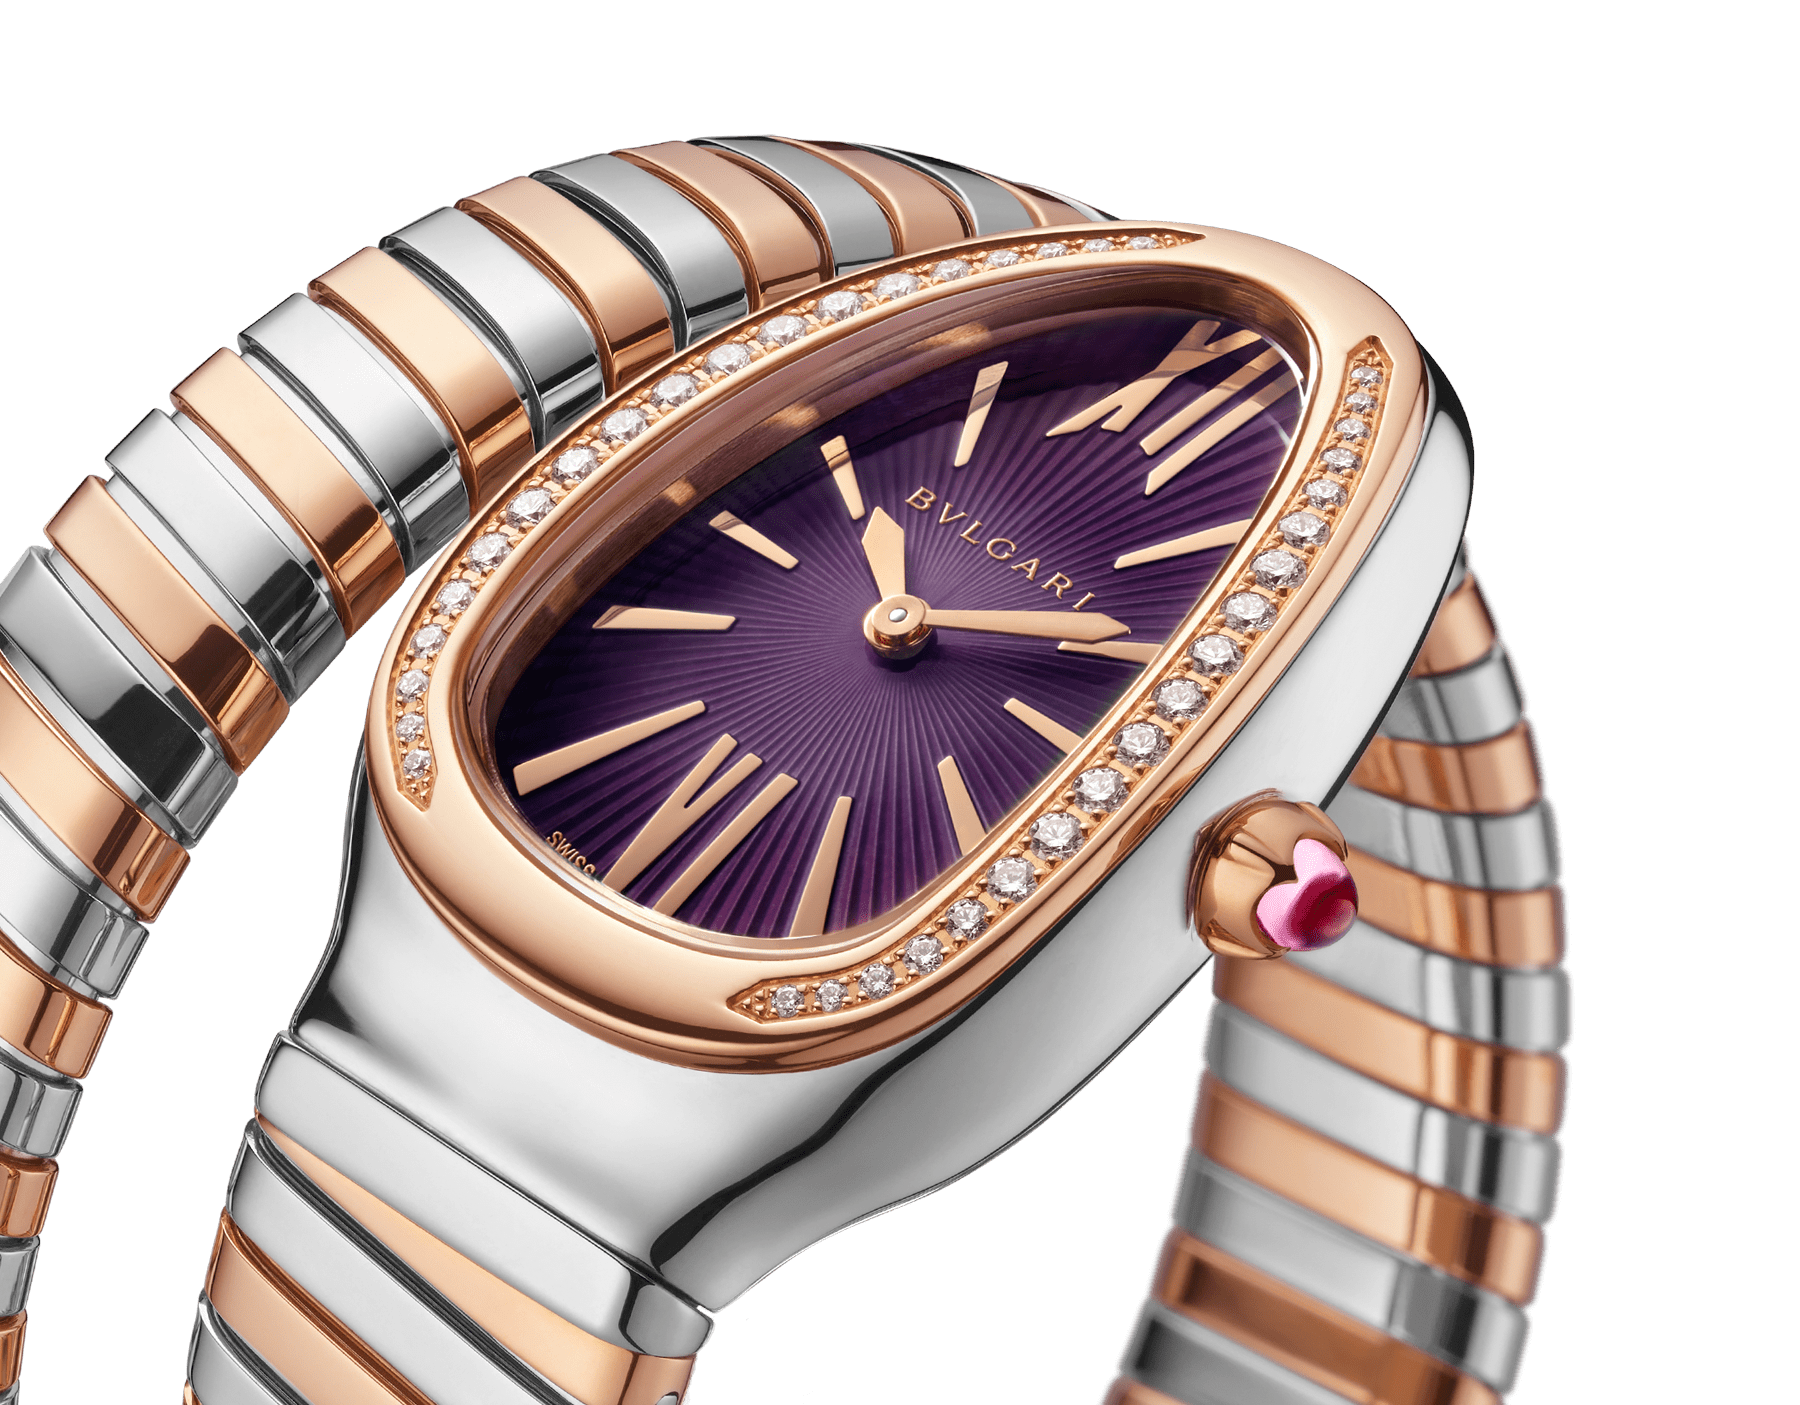 Serpenti Tubogas single spiral watch with stainless steel case, 18 kt rose gold bezel set with brilliant cut diamonds, violet lacquered dial, 18 kt rose gold and stainless steel bracelet. 102493 image 3